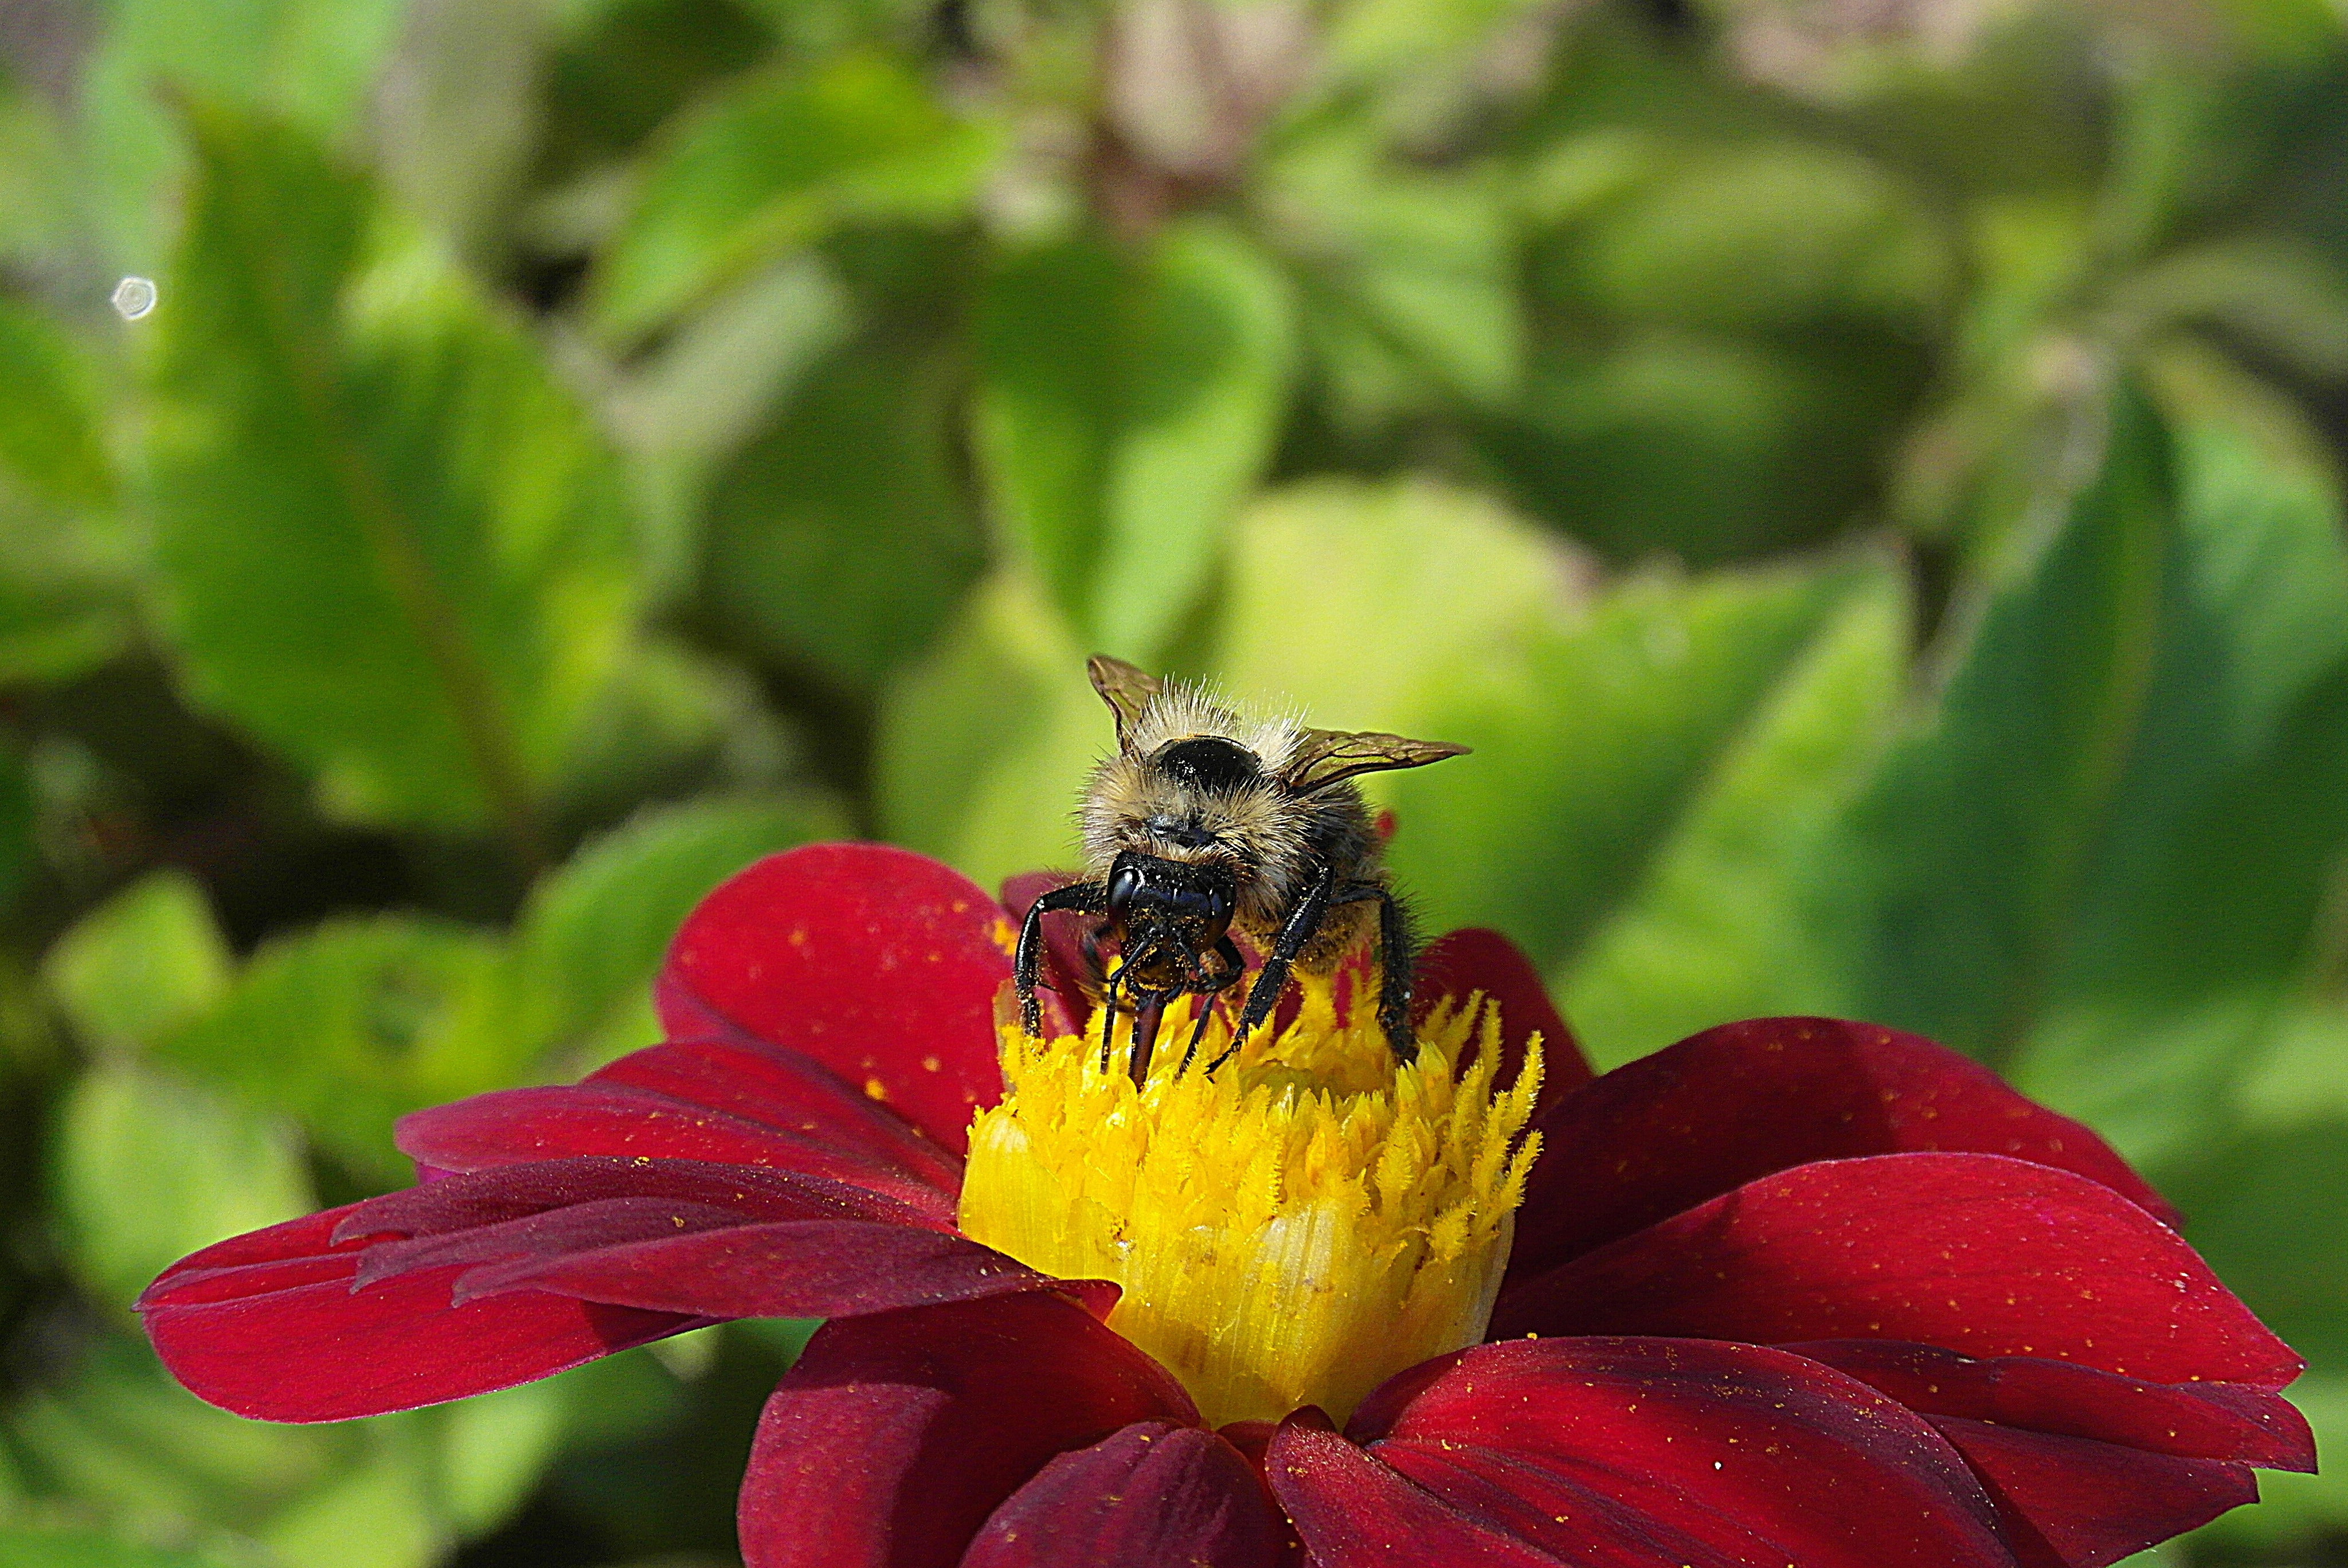 Bee on the flower 56274